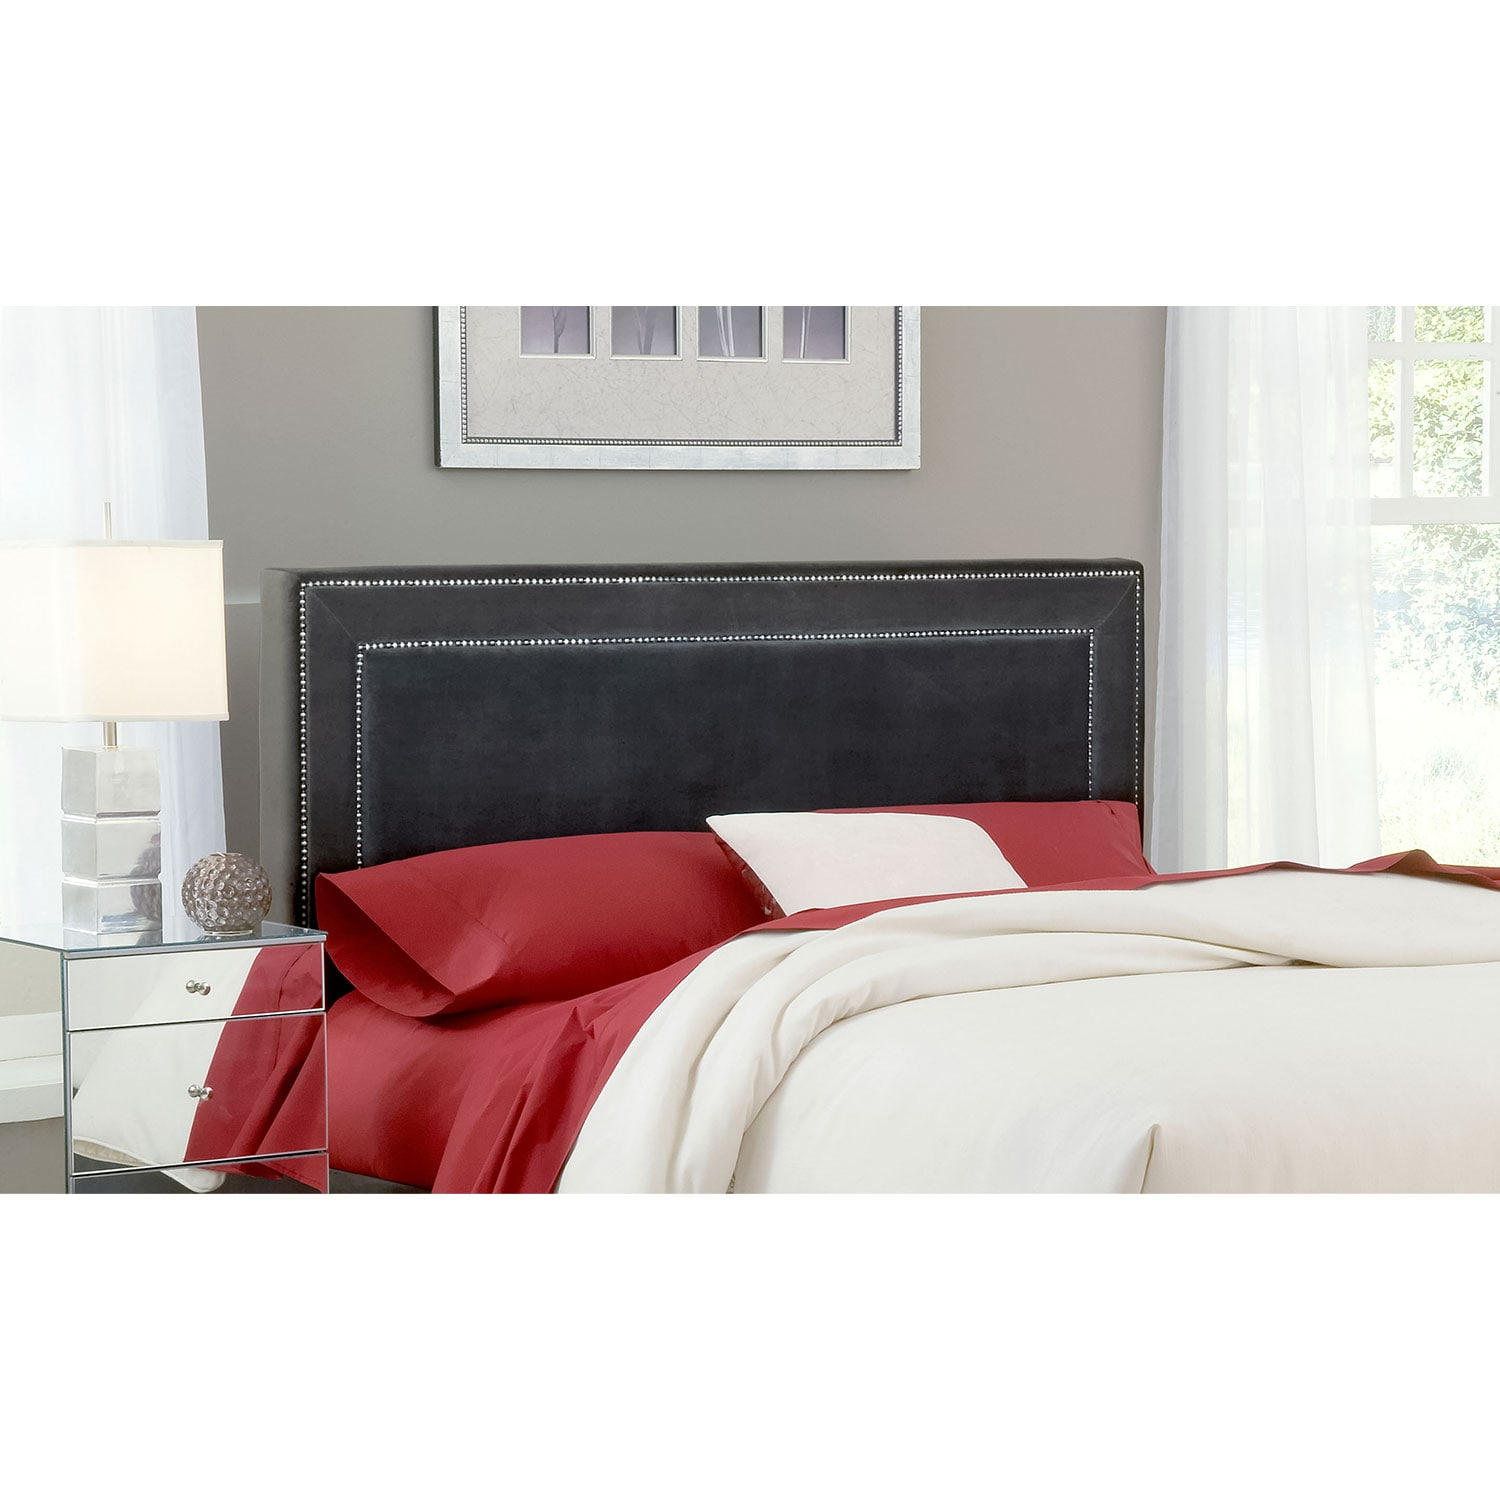 American Signature Furniture Replacement Parts: Amber Queen Upholstered Headboard - Pewter